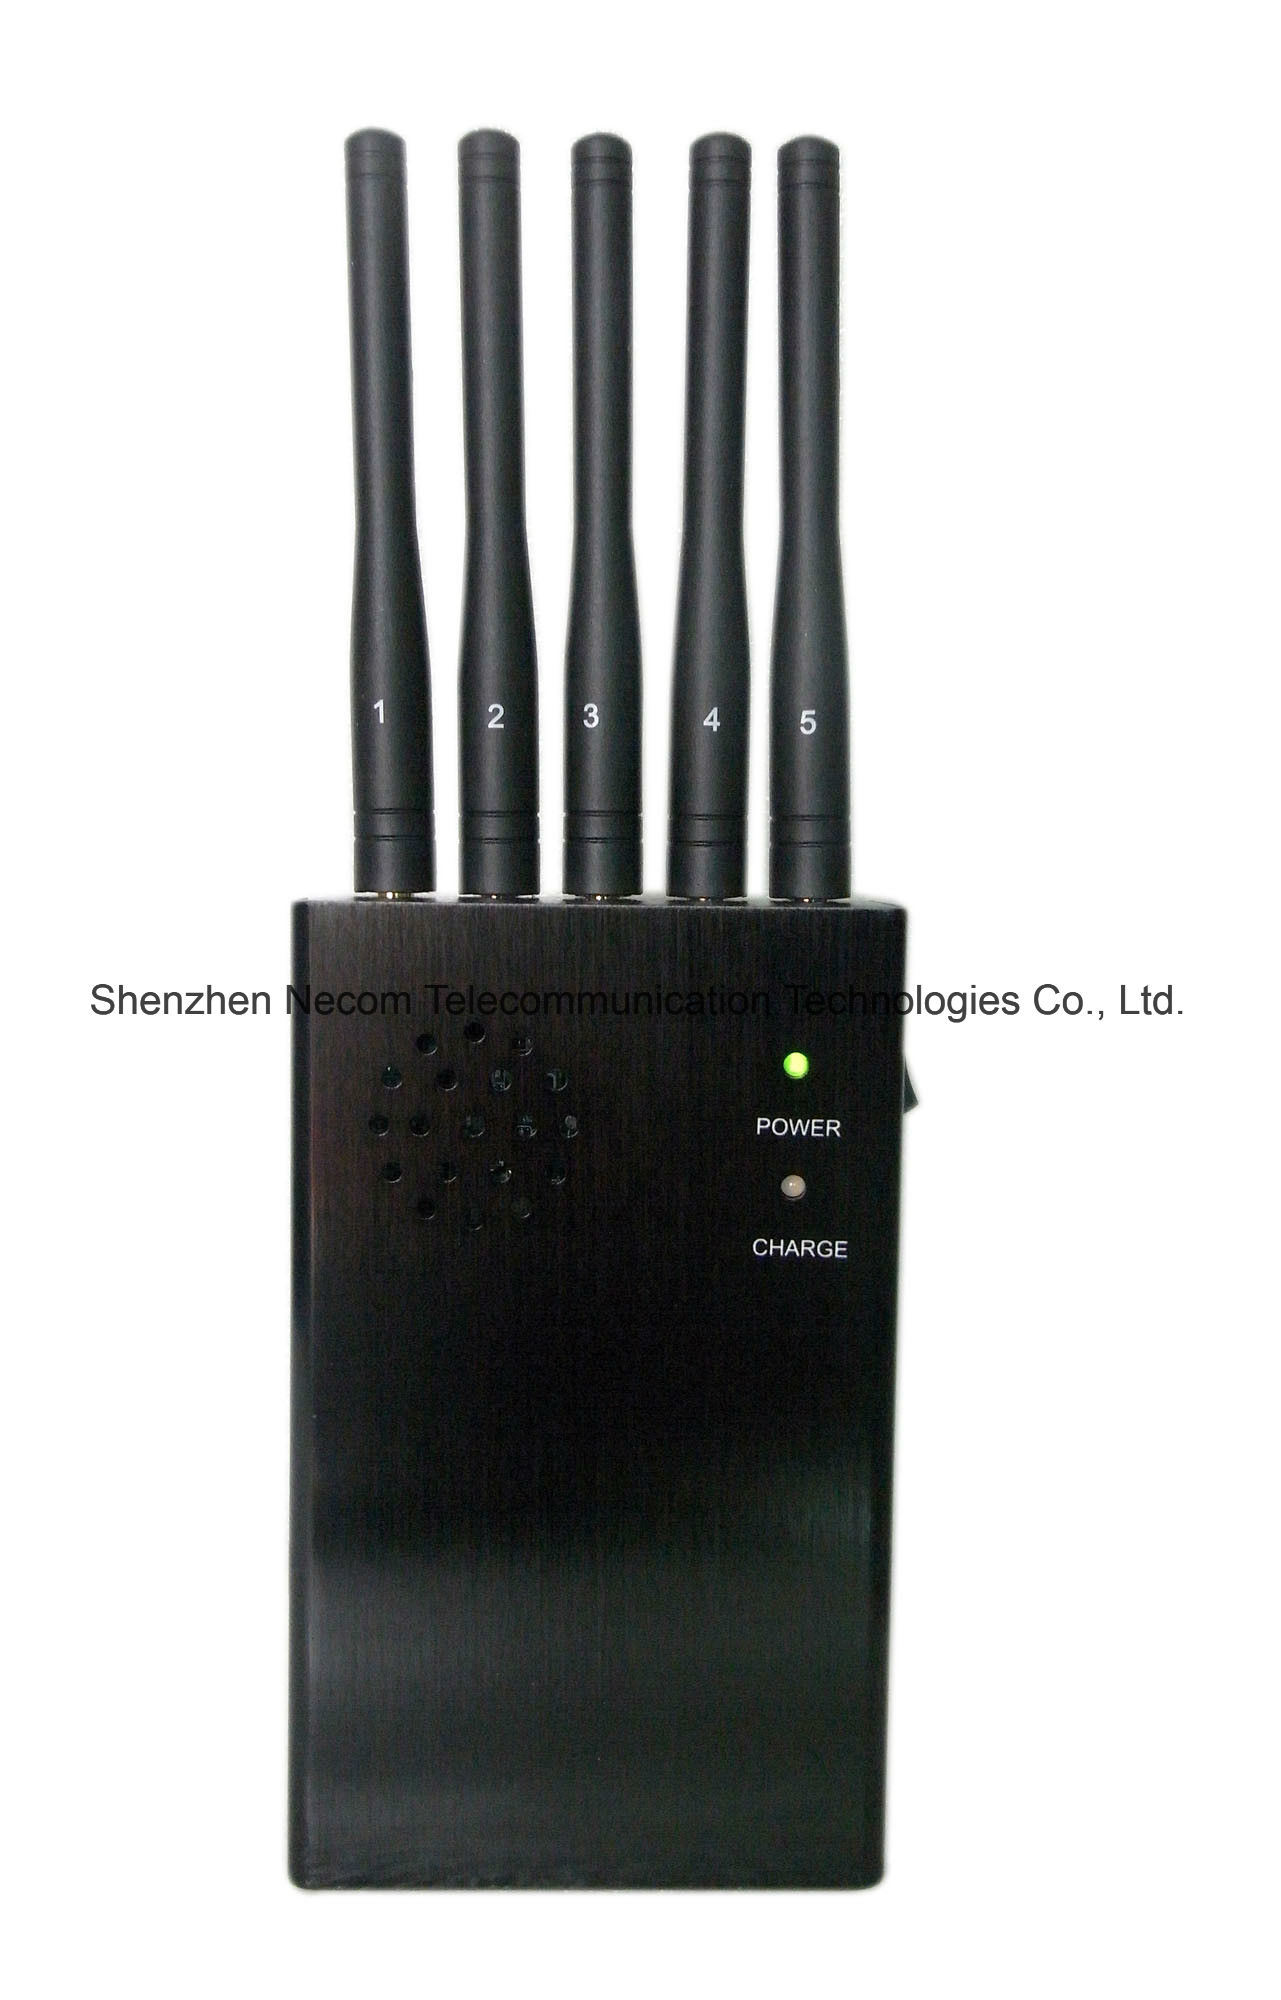 phone jammer cheap homes - China 5 Antenna Handheld Phone Jammer & WiFi Jammer & GPS Jammer, 5bands Handheld Jammer for Cellphone, Wi-Fi, 433, 315 Remote Control Jammer - China 5 Band Signal Blockers, Five Antennas Jammers